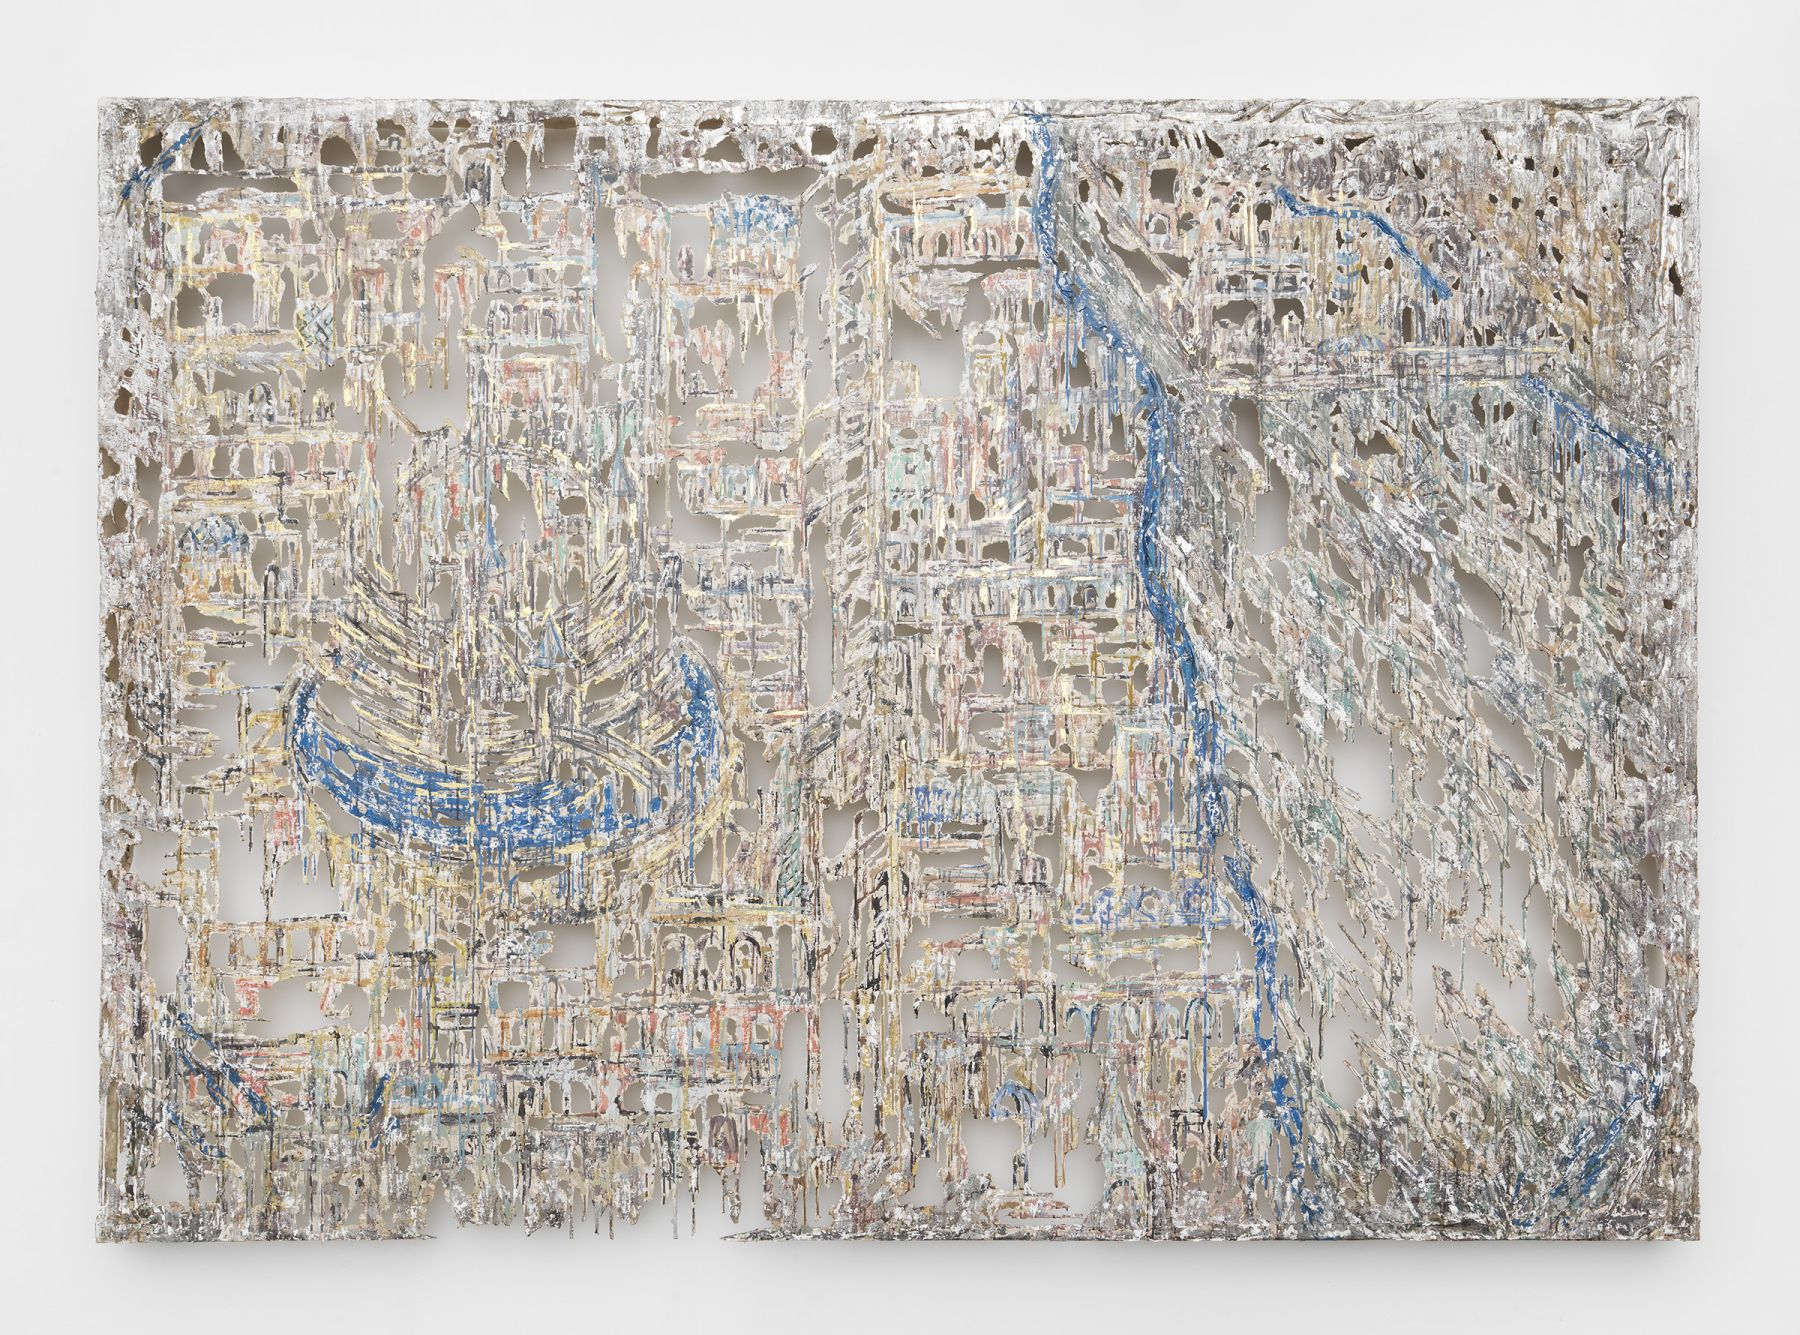 a dripping wall panel by Diana Al-Hadid in a Chelsea art gallery